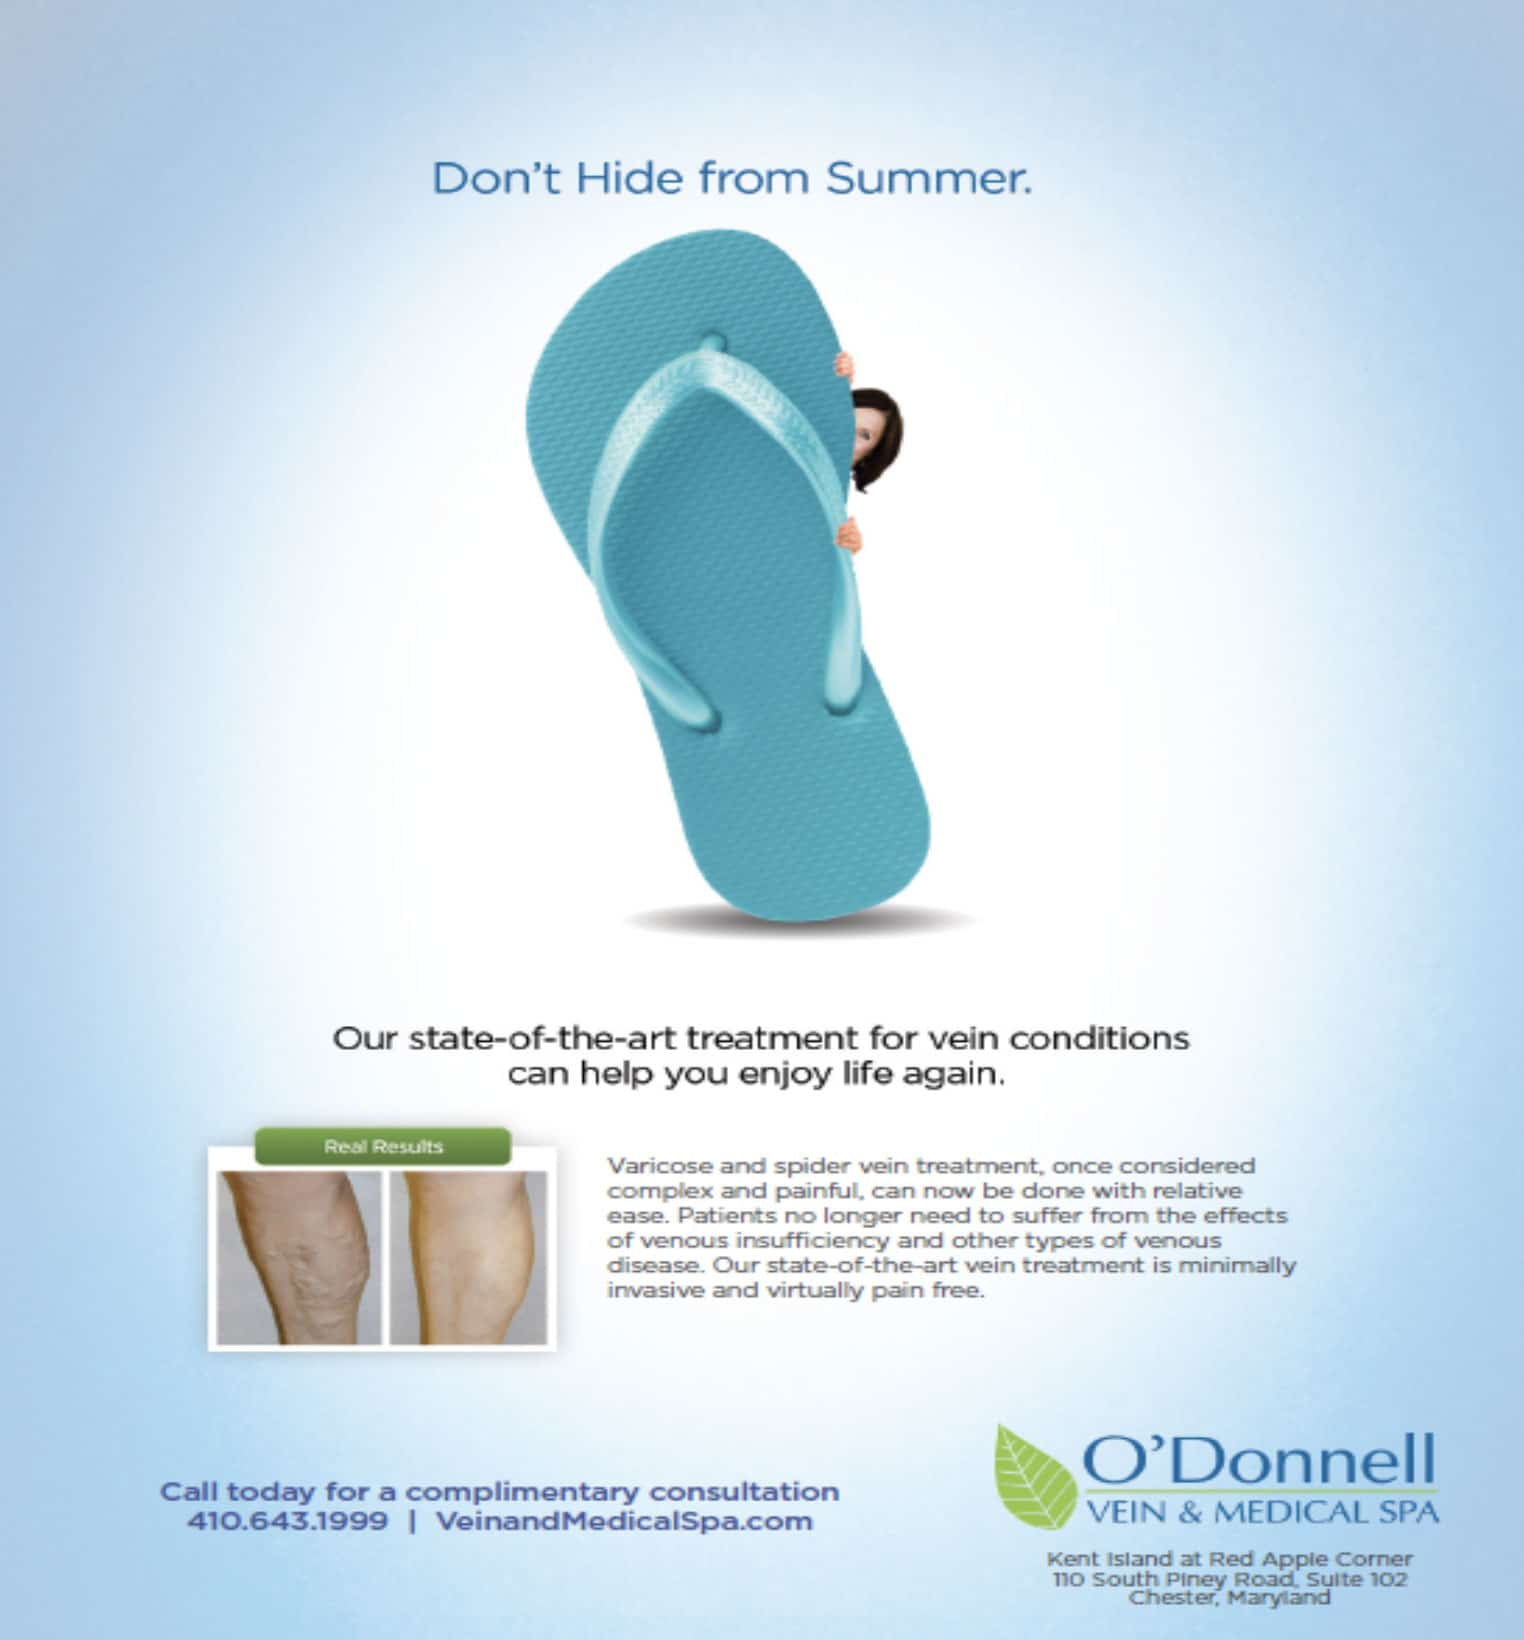 Don't Hide from Summer Ad - O'Donnell Vein